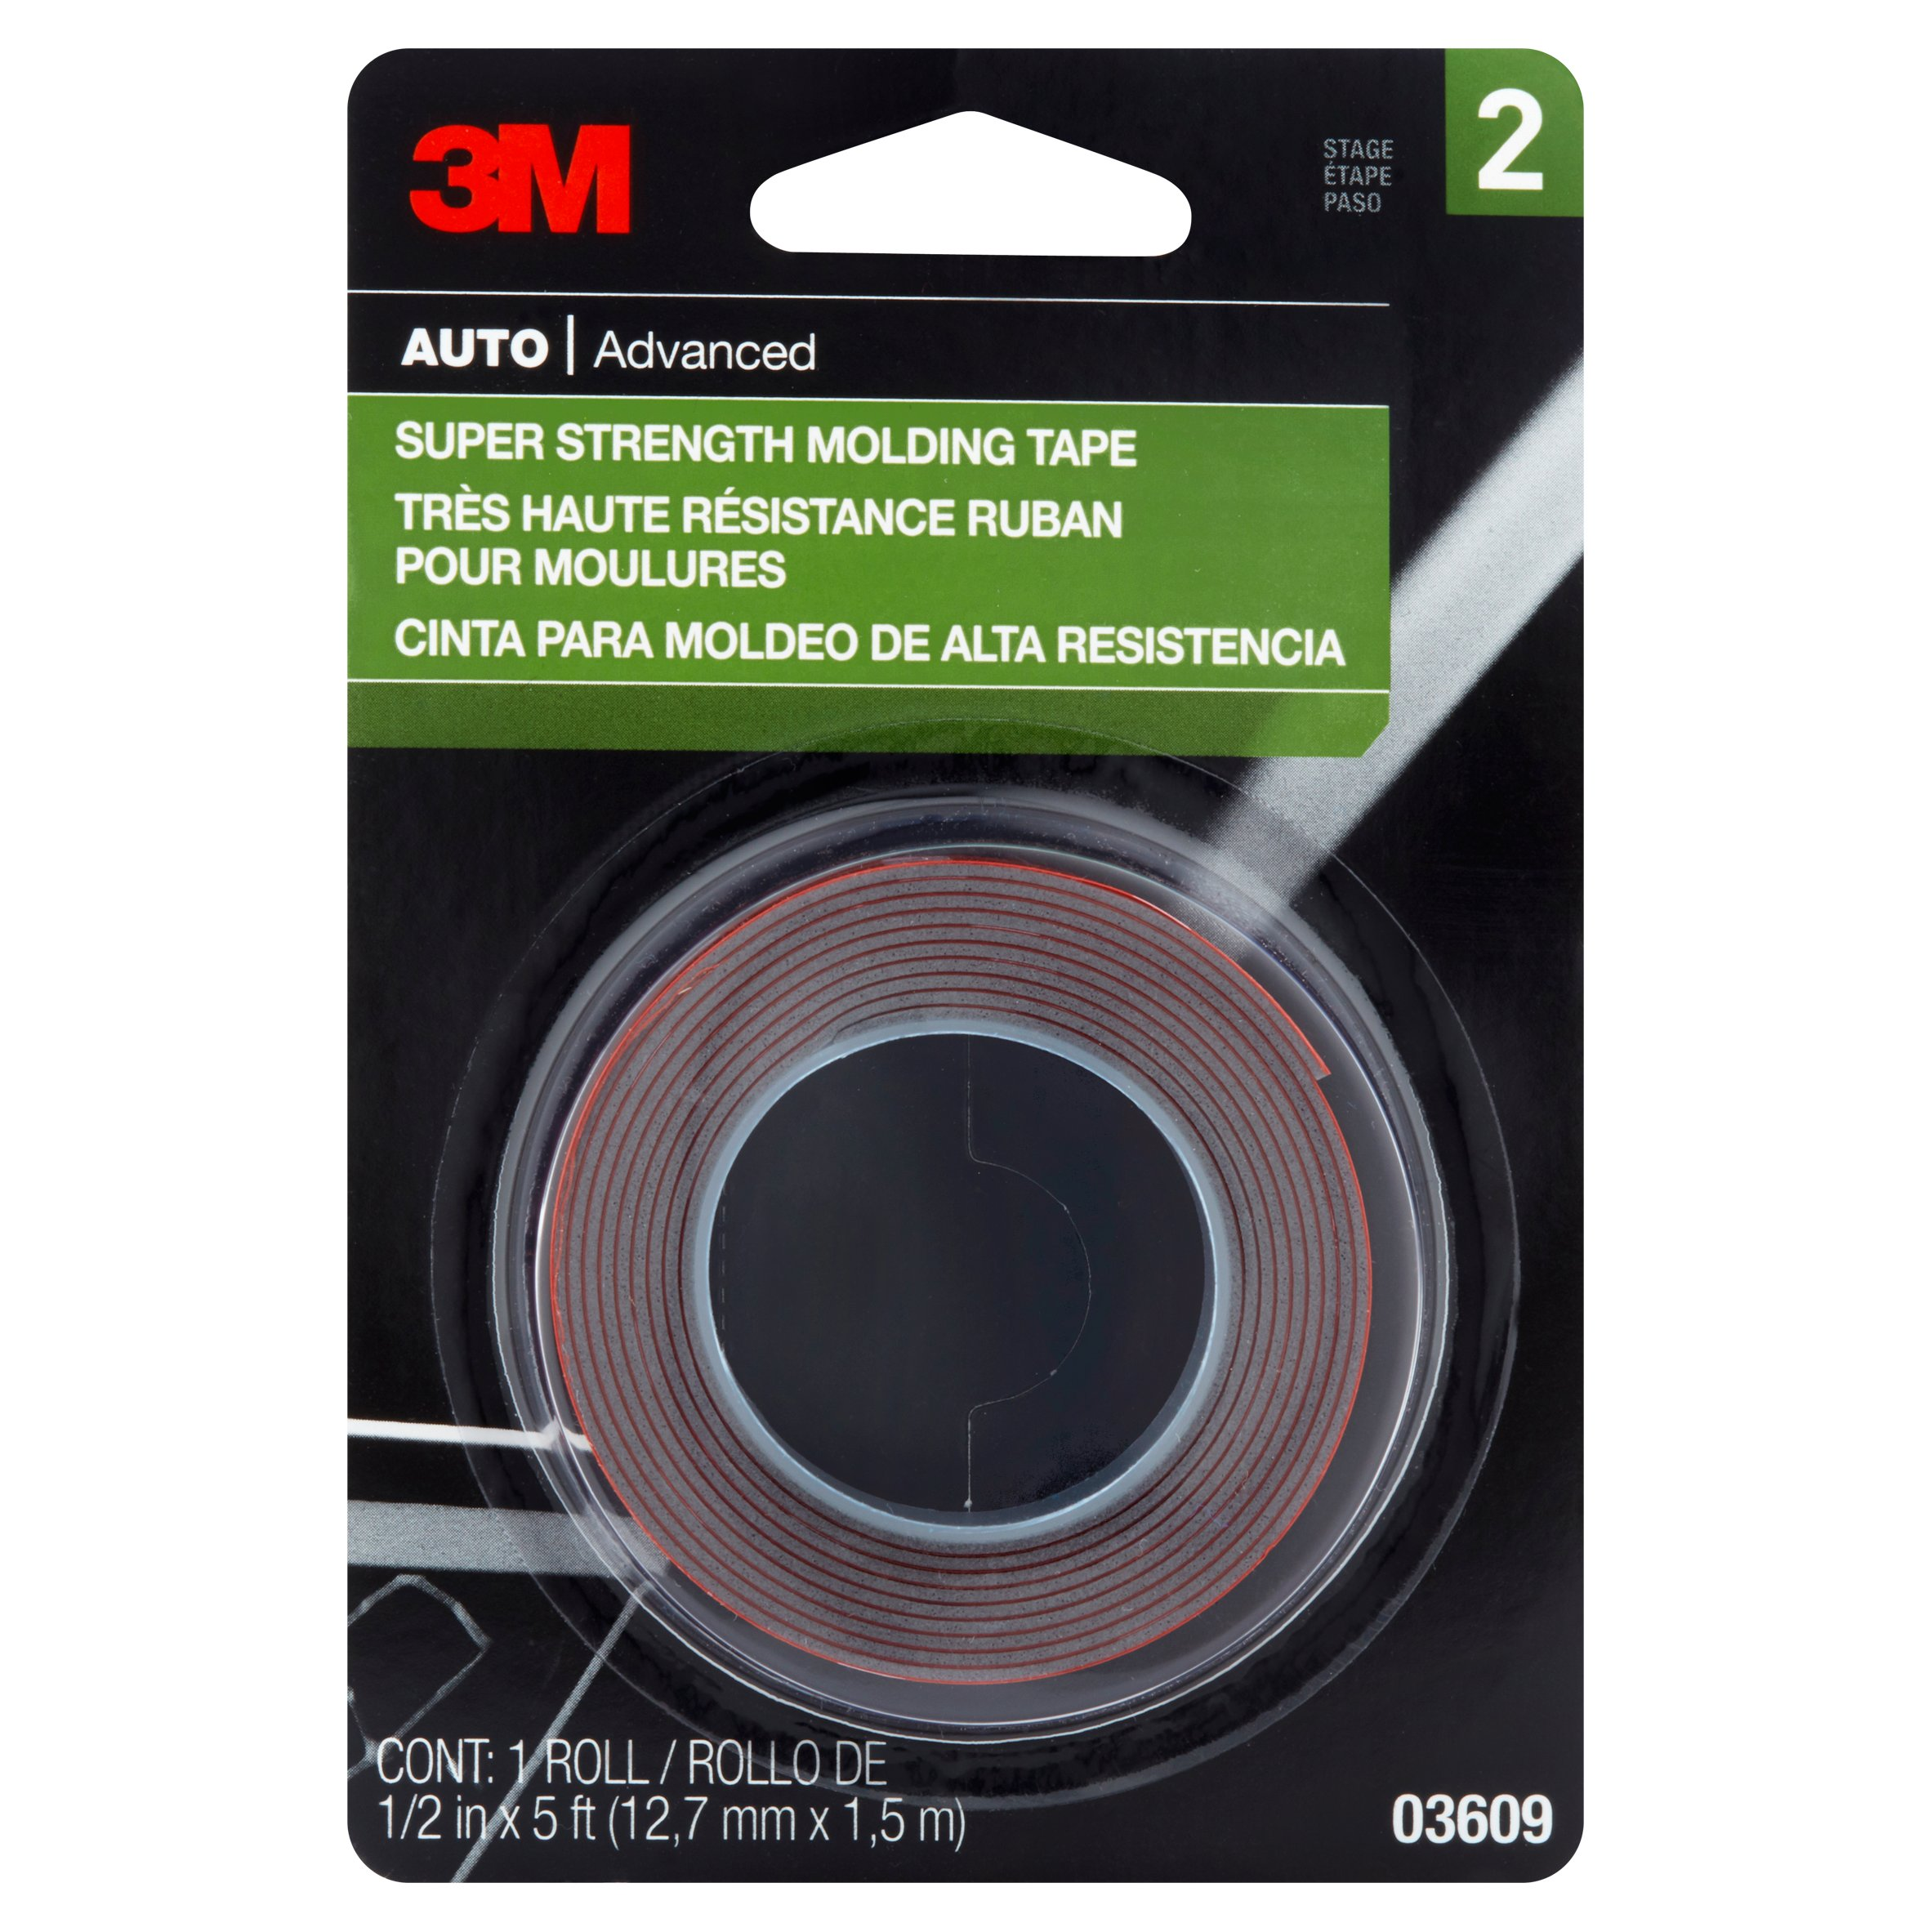 3M Auto Advanced Stage 2 Super Strength Molding Tape